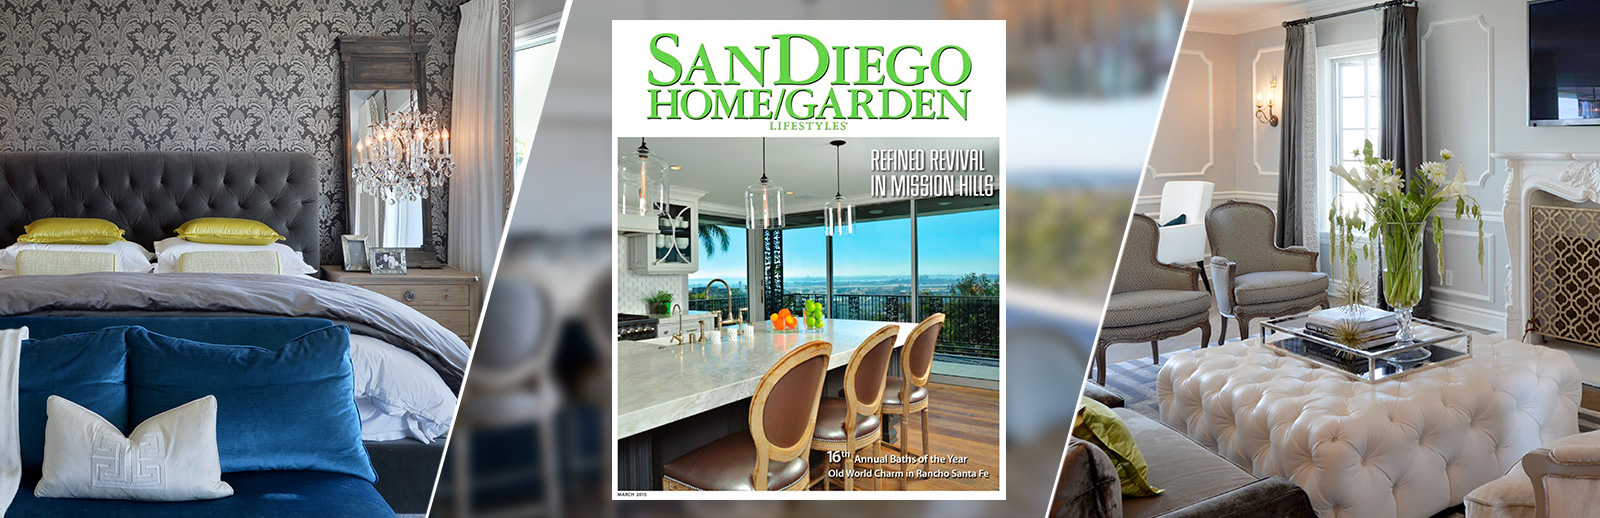 San diego remodeling home remodel renovations lars for The home mag san diego